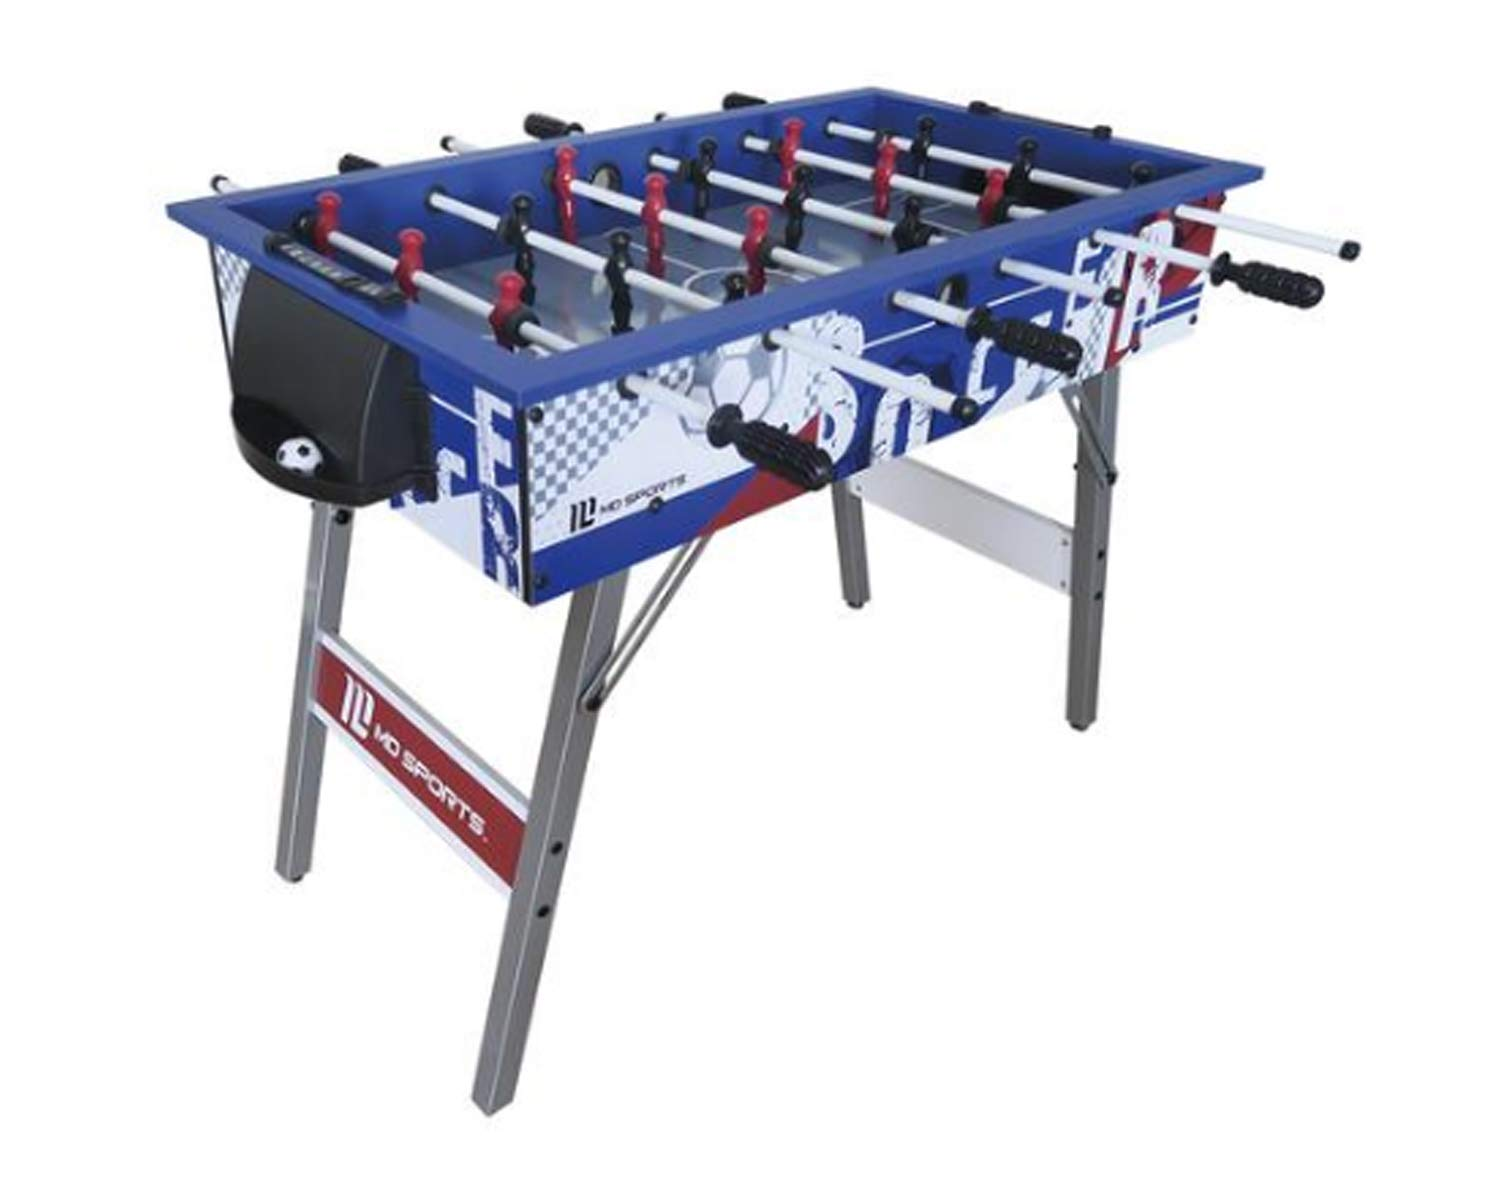 MD Sports 42 inch Foosball Foldable Table with Durable Steel Player Rods & Robot Style Players | Ages 8 Years up